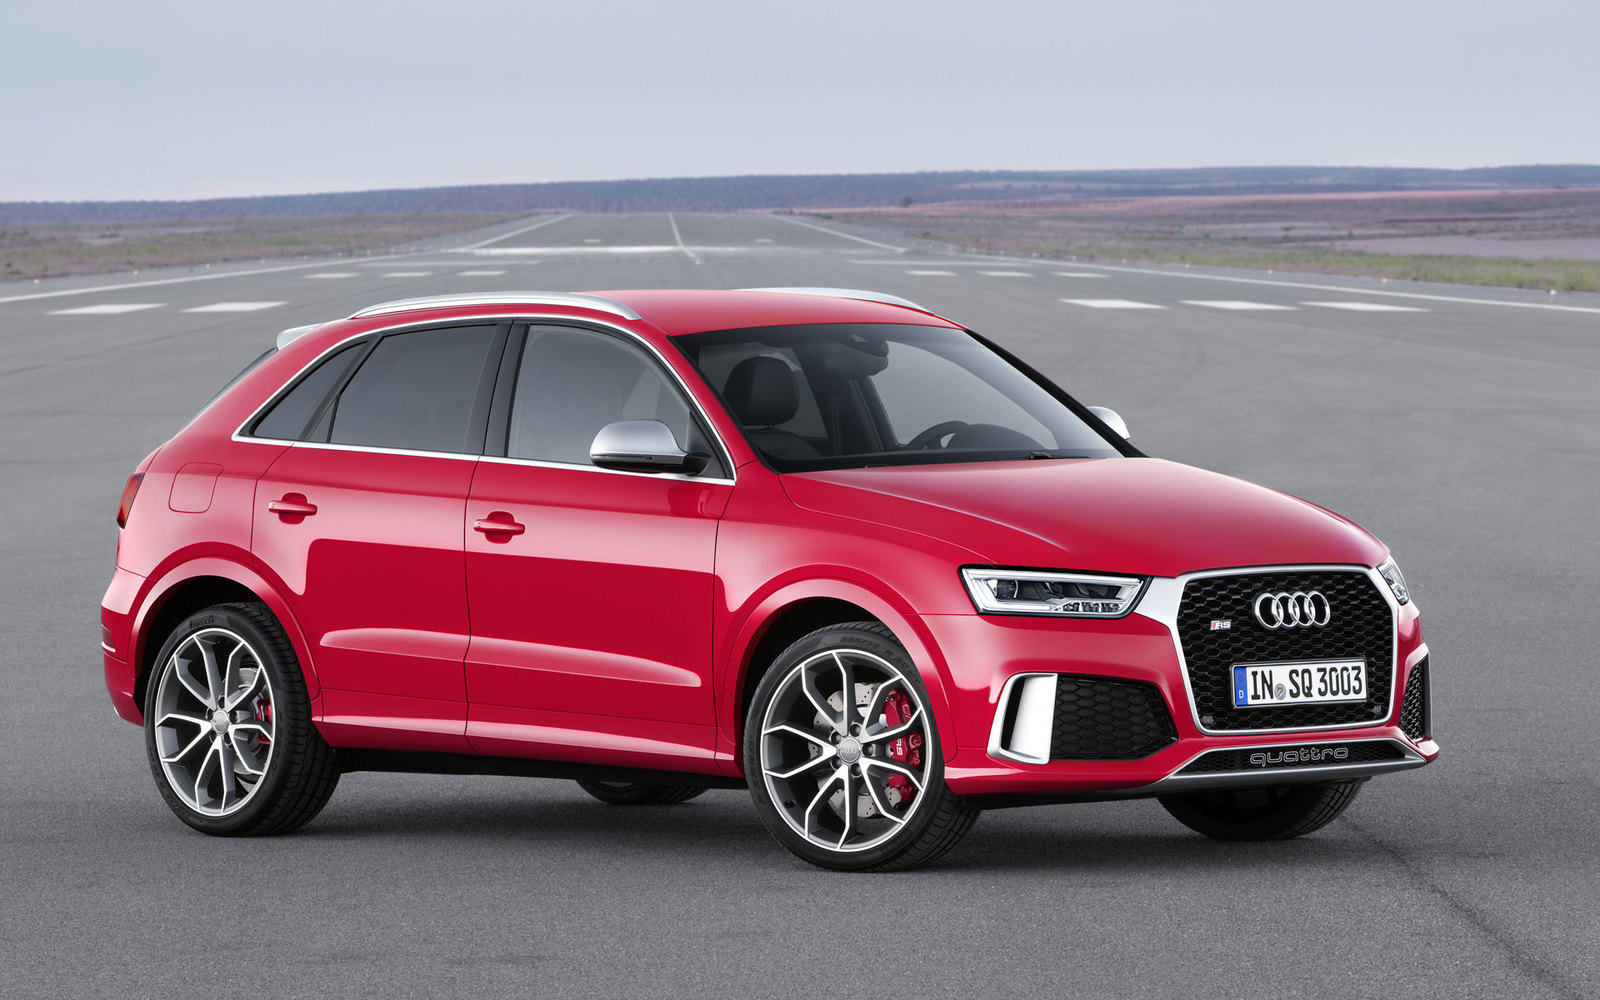 Audi RS Q3 Facelift